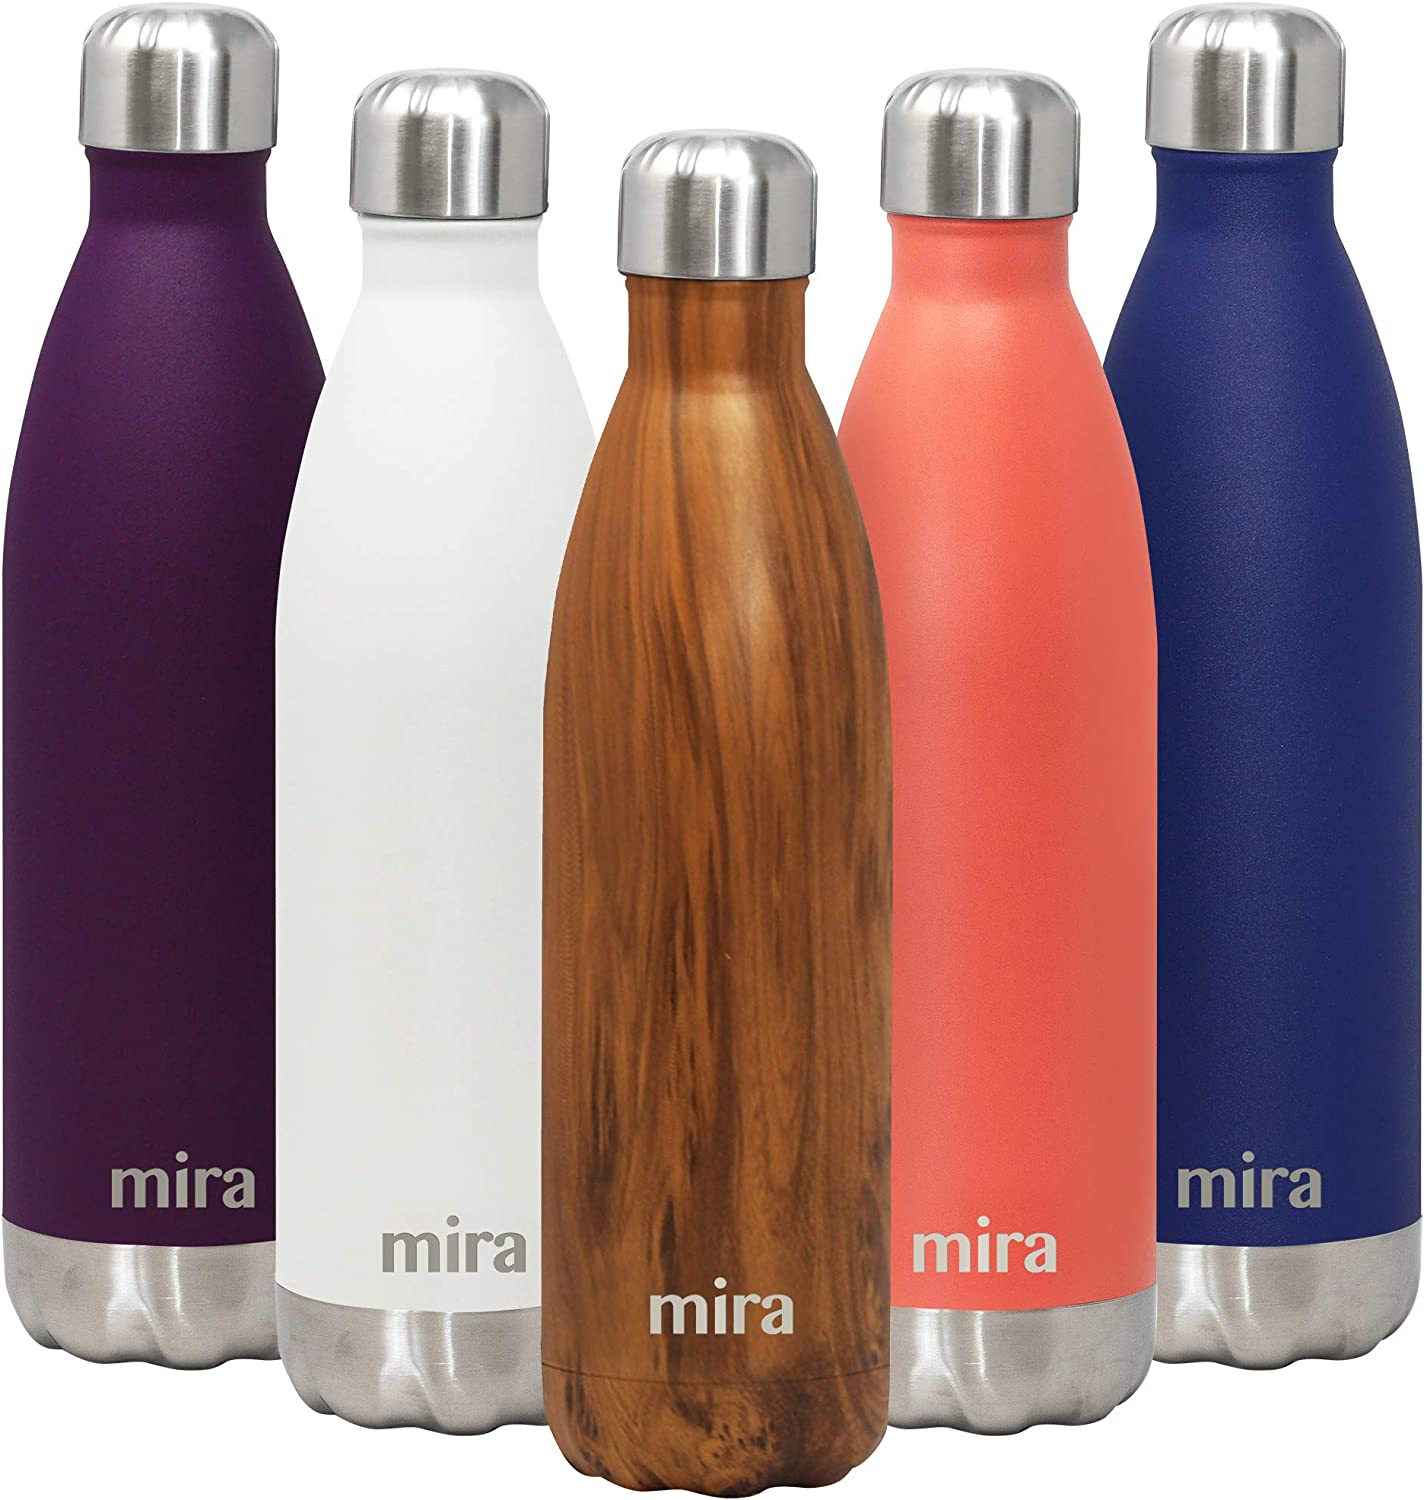 MIRA Stainless Steel Vacuum Insulated Water Bottle   Leak-Proof Double Walled Cola Shape Bottle   Keeps Drinks Cold for 24 Hours & Hot for 12 Hours